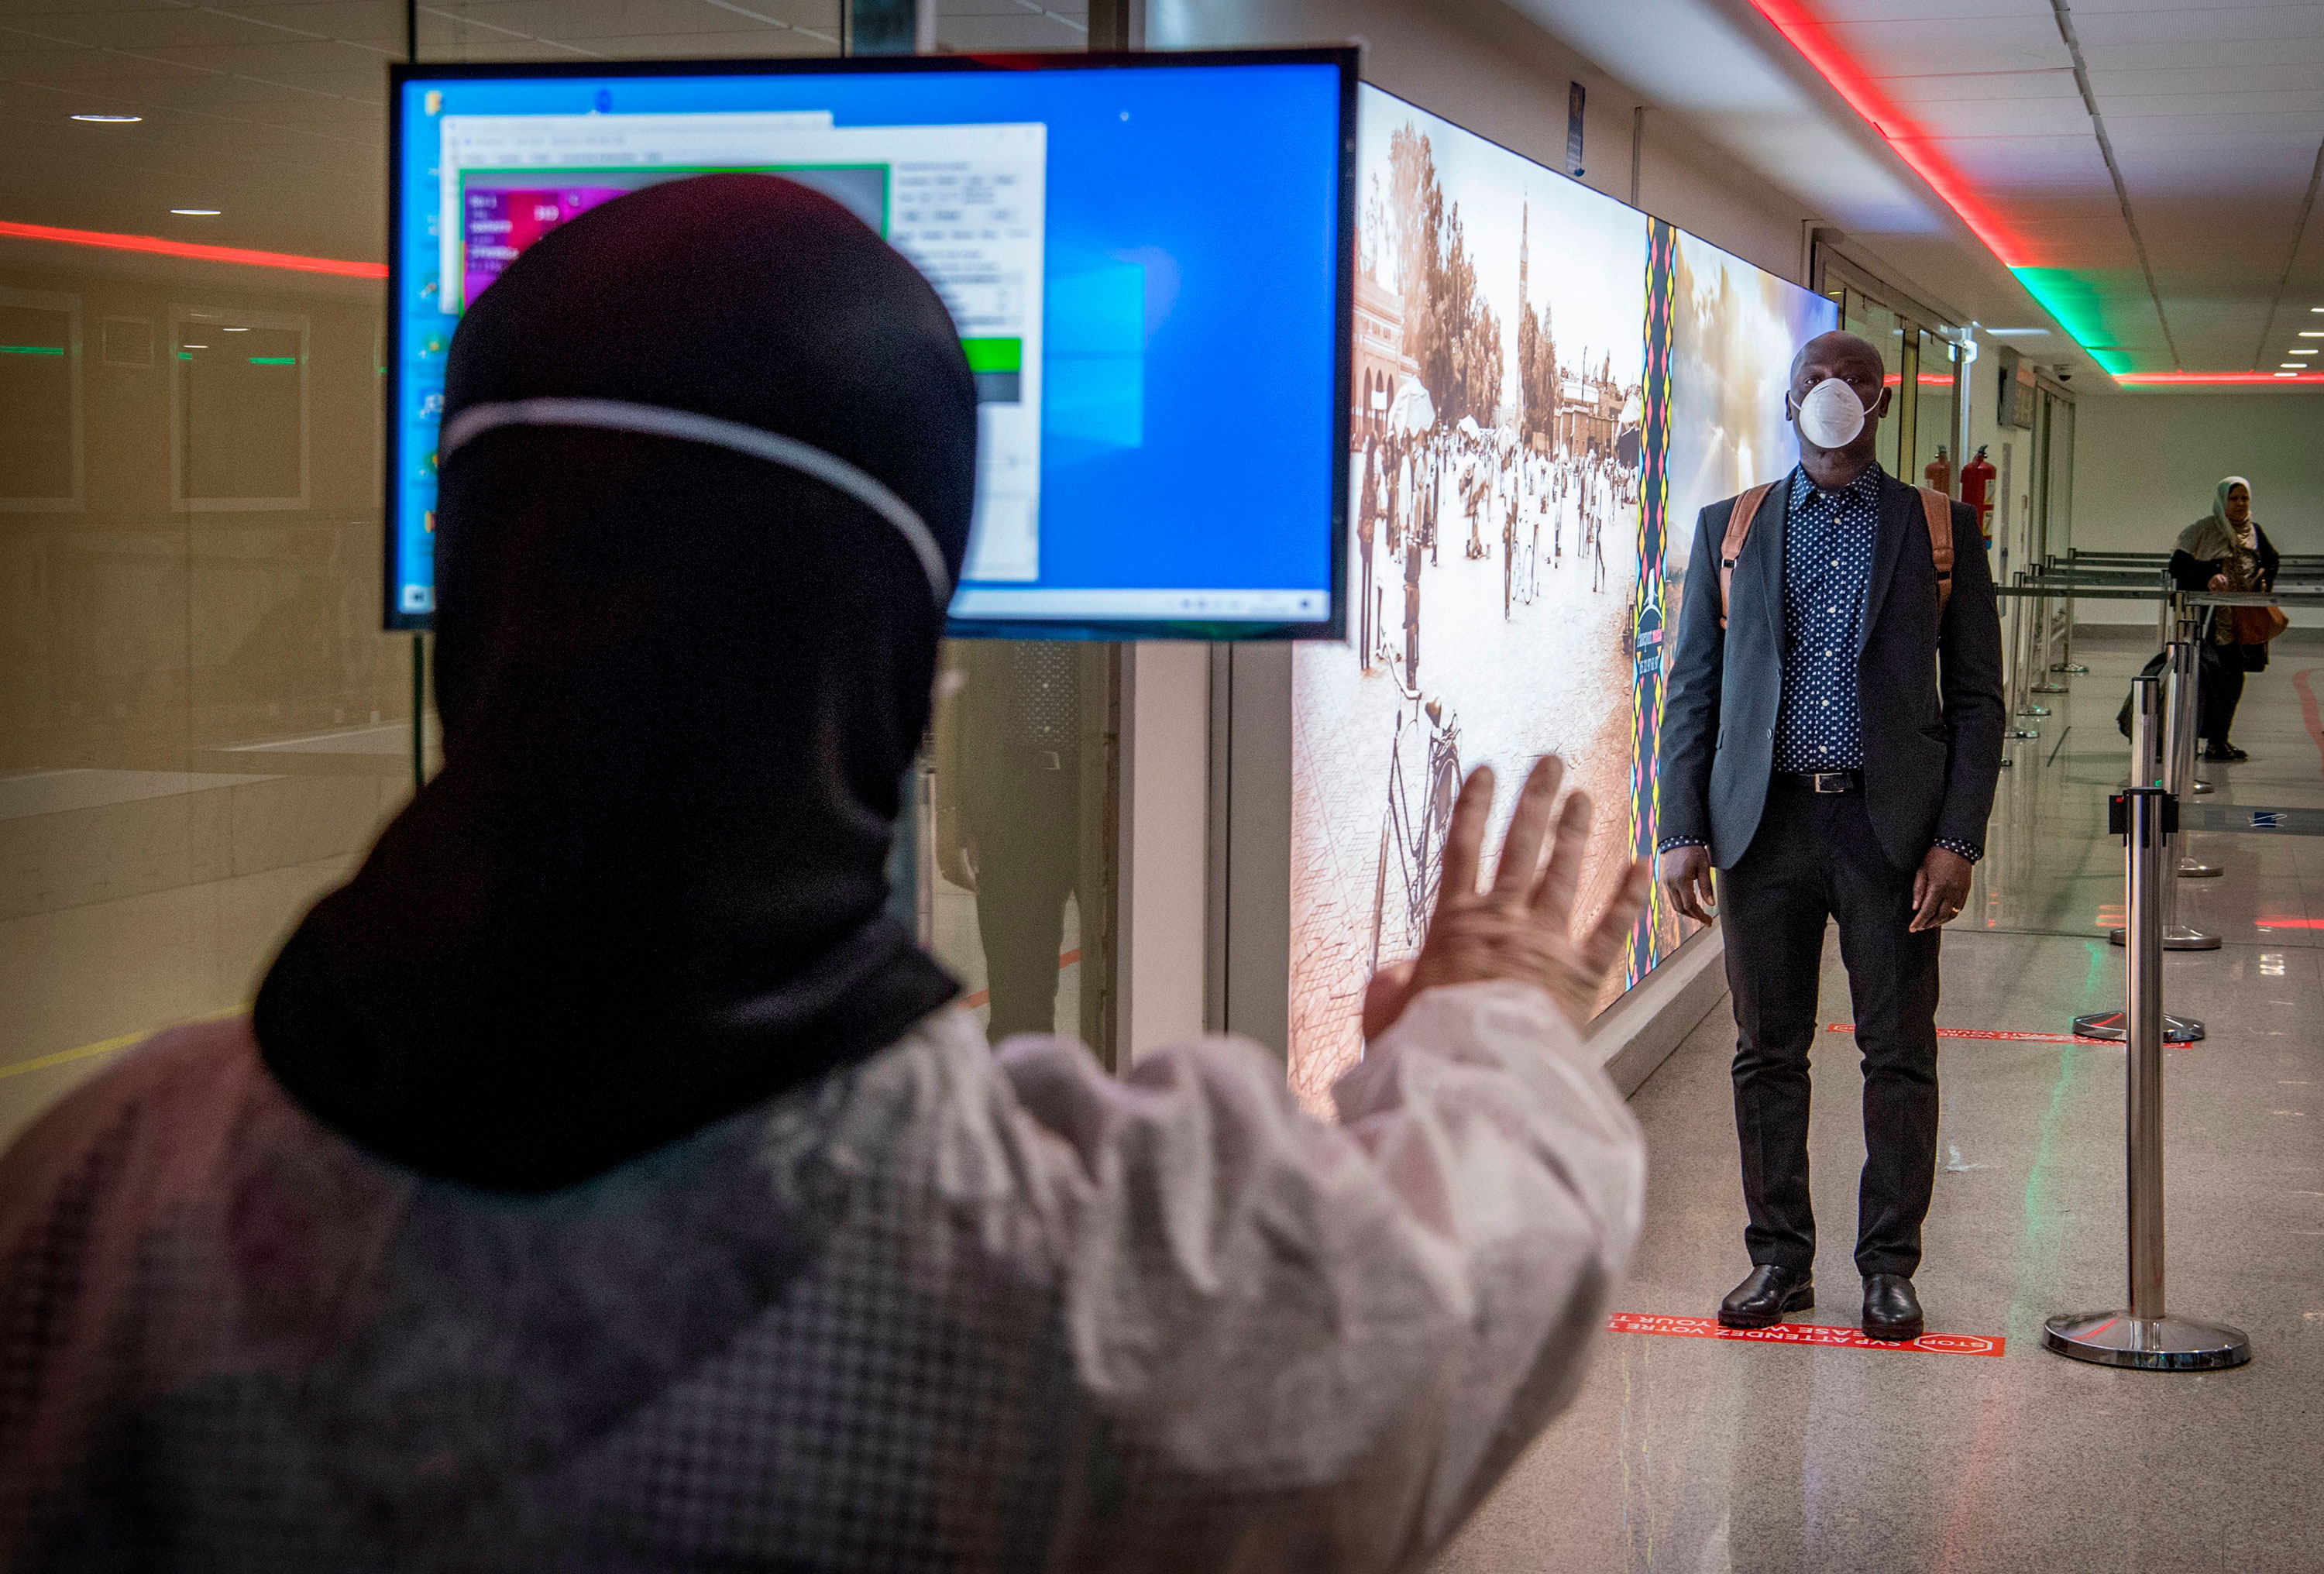 Moroccan health workers scan passengers arriving from Italy at Casablanca Mohammed V International Airport on March 3.